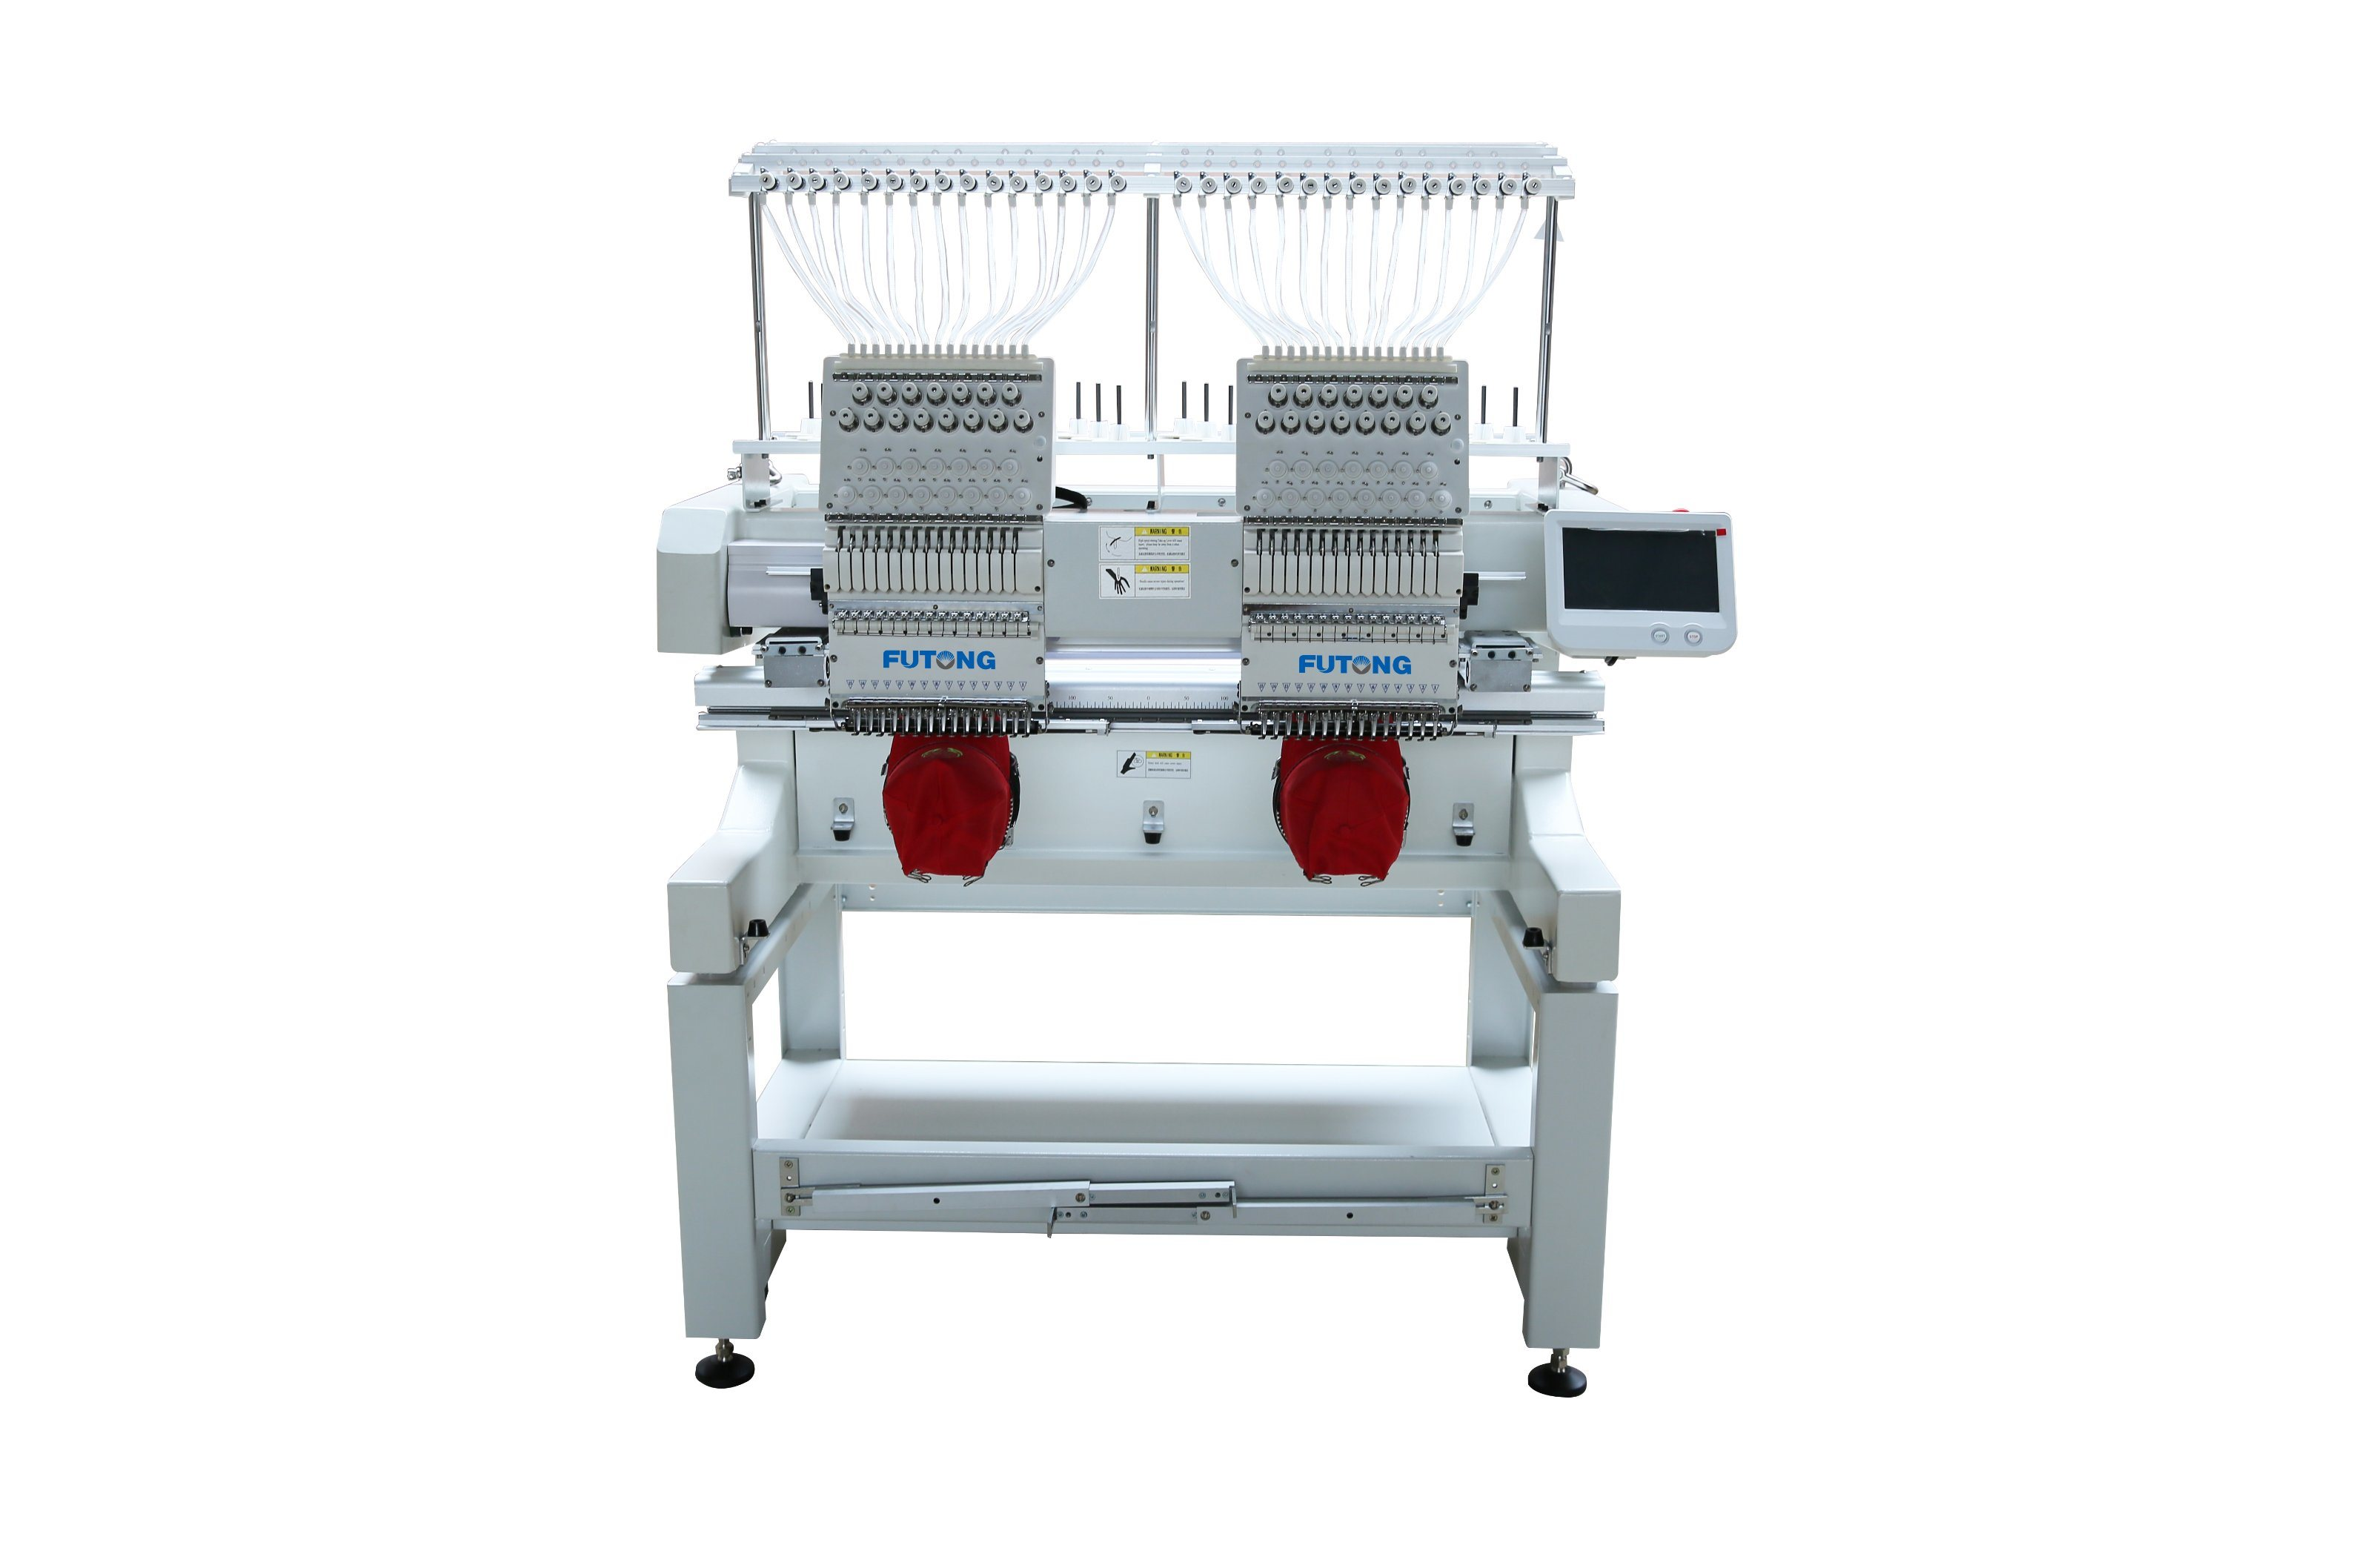 Industriel Machine Hot Item Low Price Brother 2 Head Embroidery Machine Parts For Cap Flat T Shirt Shoes Embroidery China Industrial Machine Brother Software Sale Two